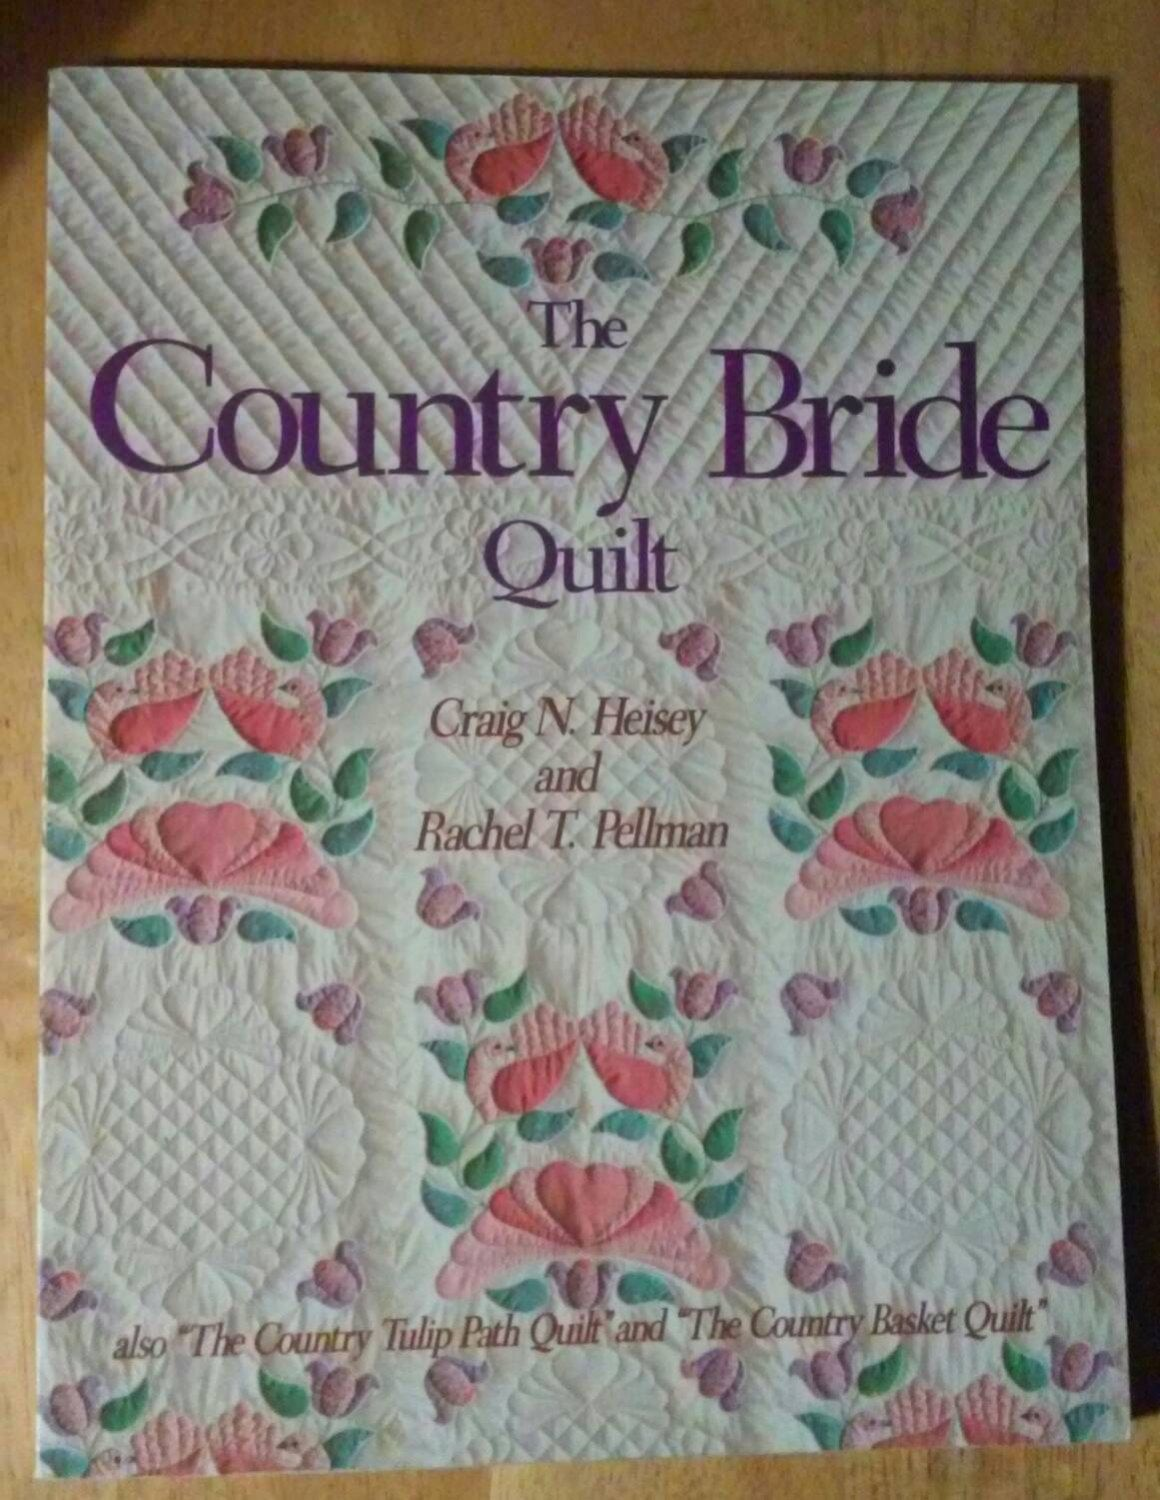 Country Bride Quilt Book Country Tulip Path Quilt Country Basket ...